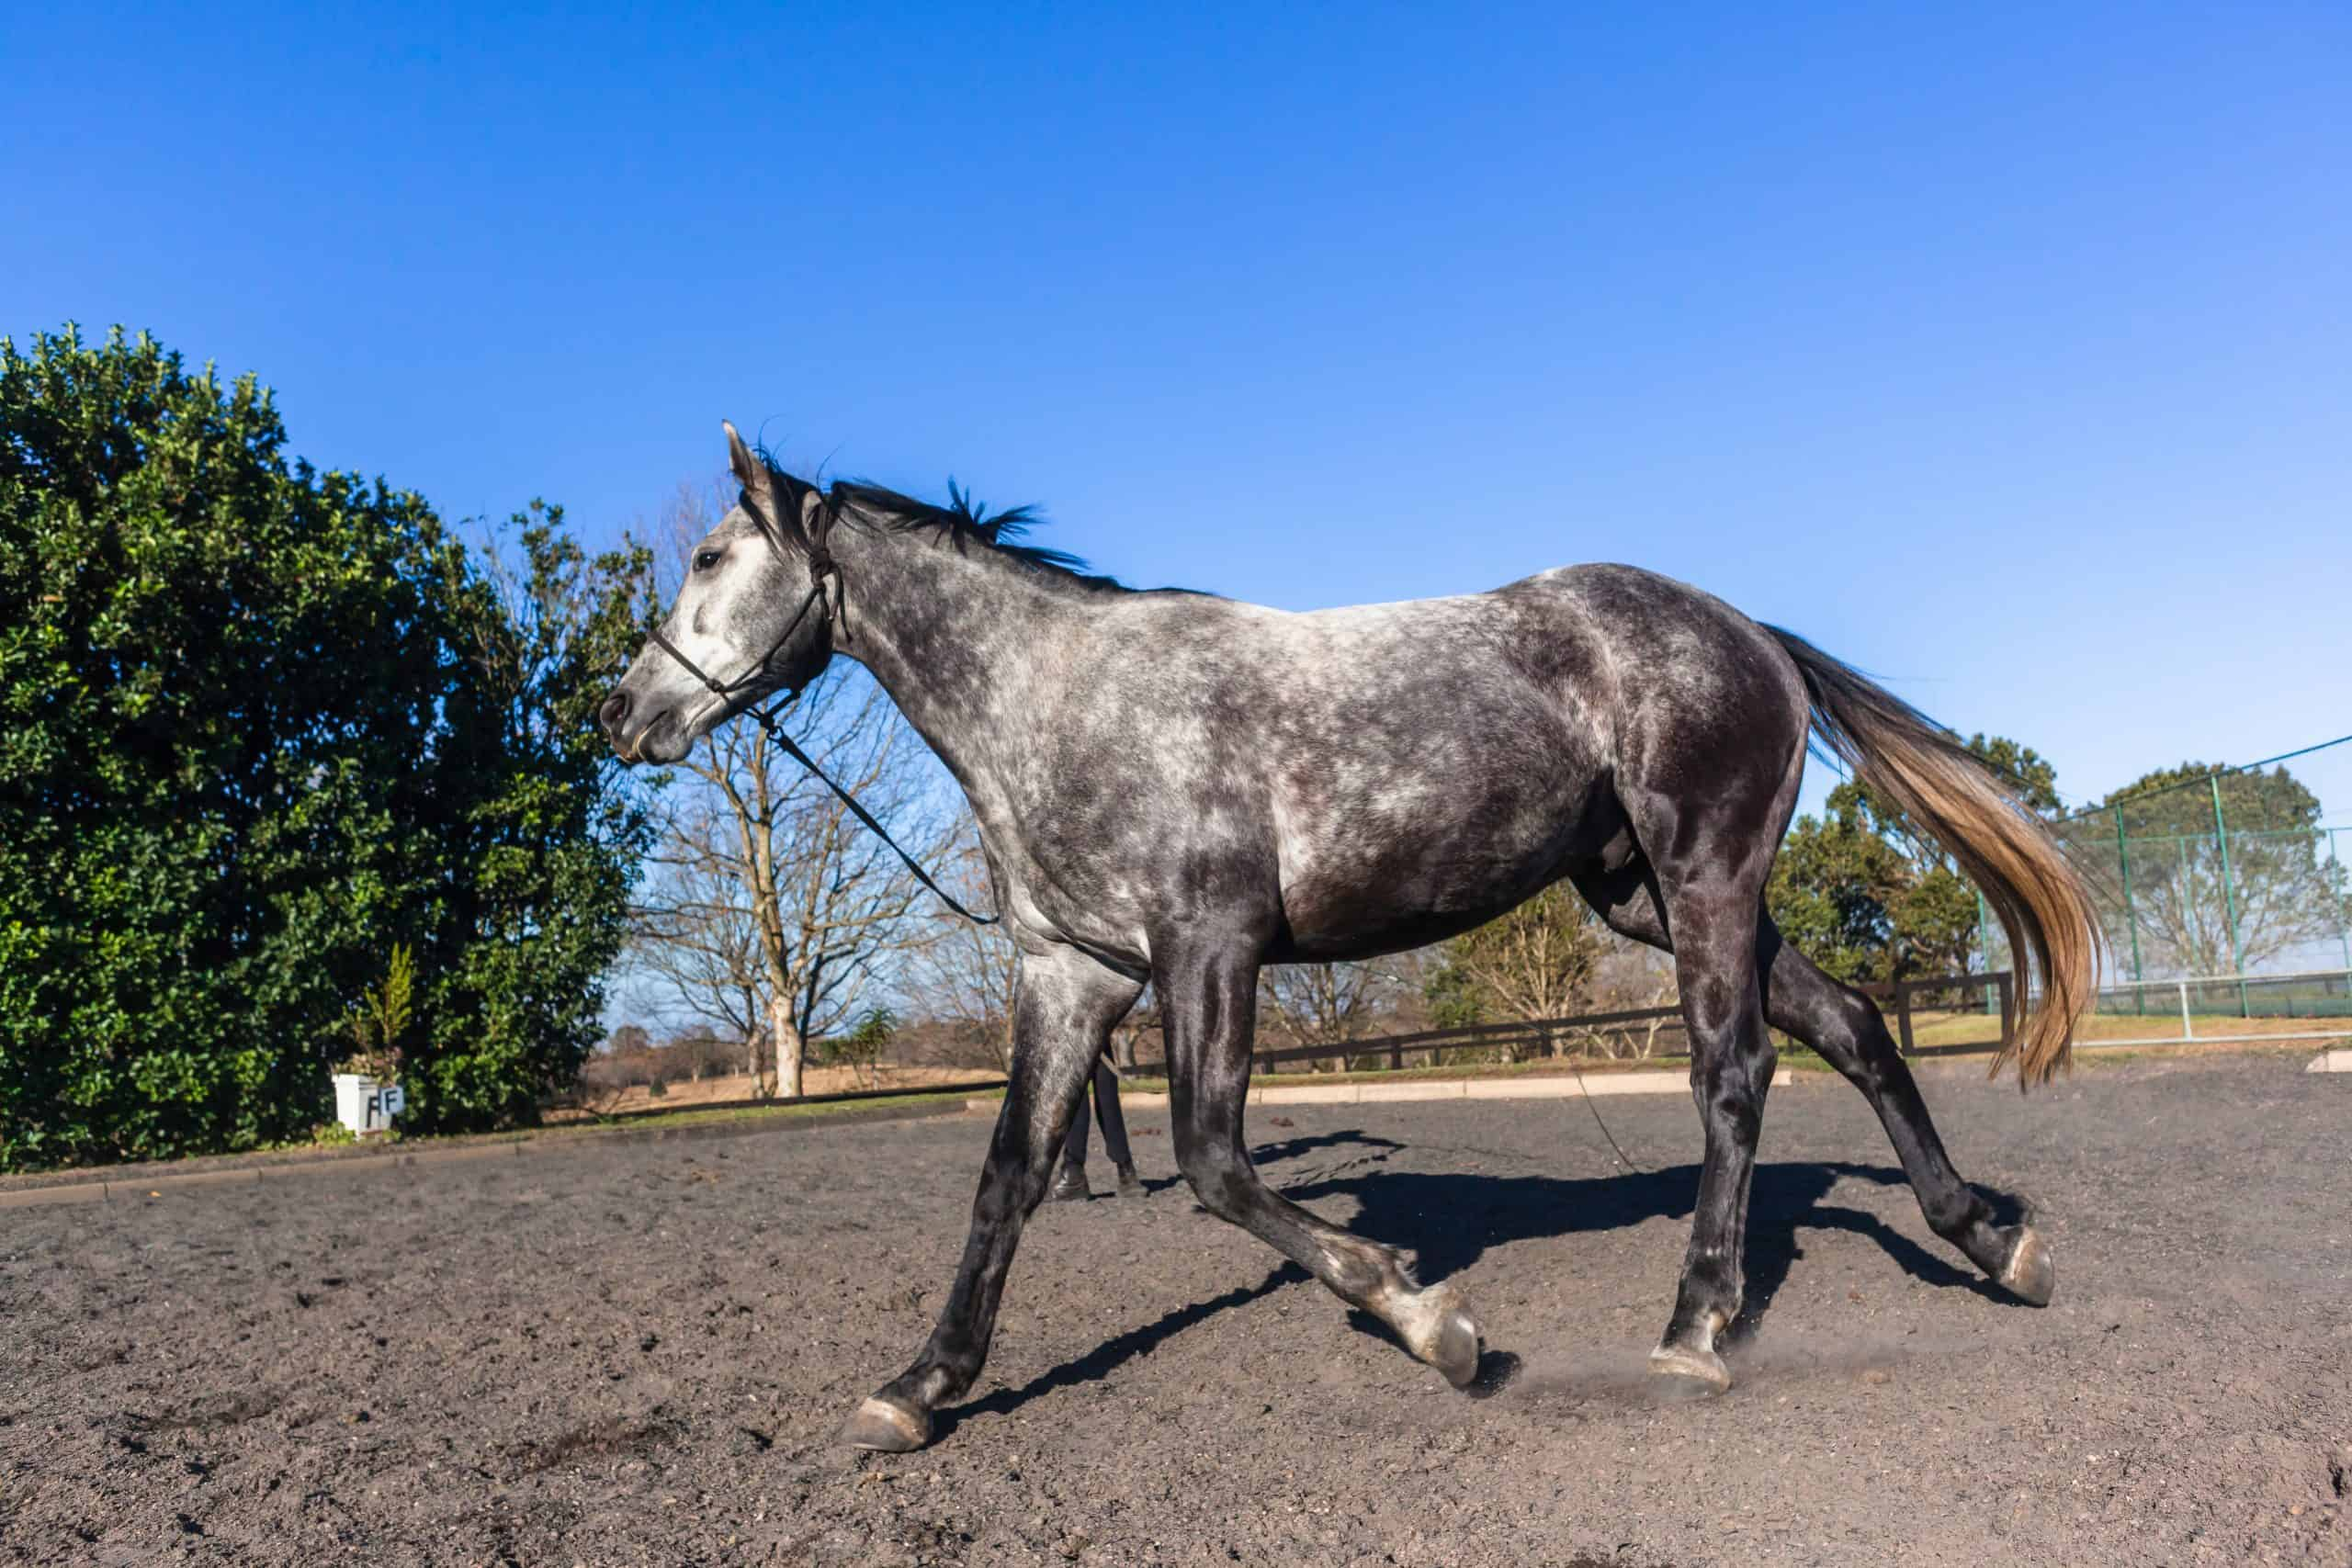 Horse gray animal exercising outdoors in sand arena afternoon blue sky.